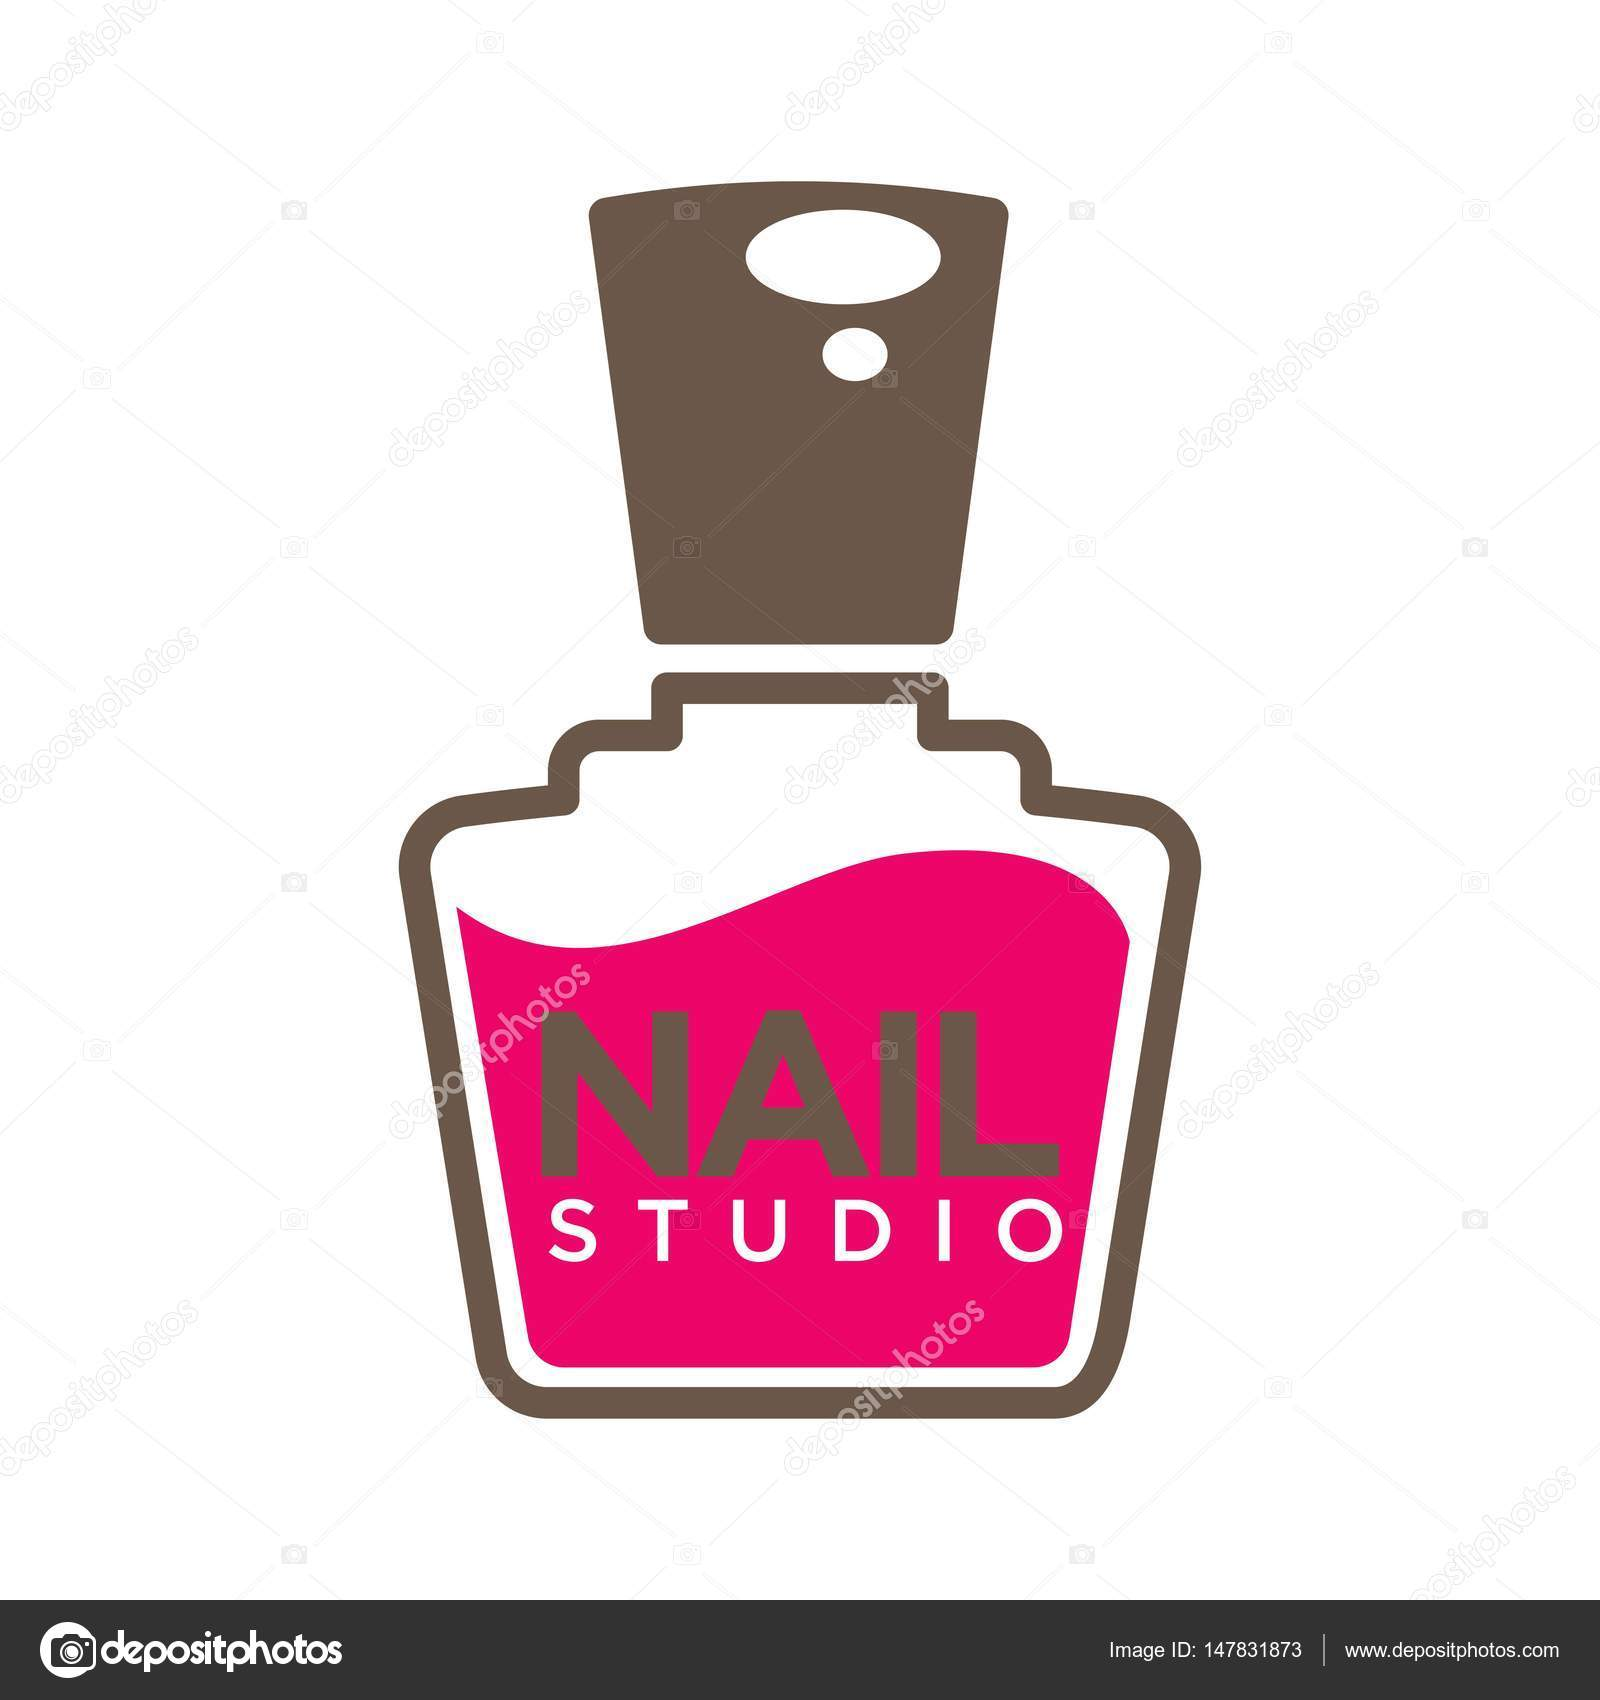 Manicure salon logo template stock vector sonulkaster 147831873 nails design studio or manicure salon logo template pink nail polish bottle with cap icon vector by sonulkaster prinsesfo Image collections